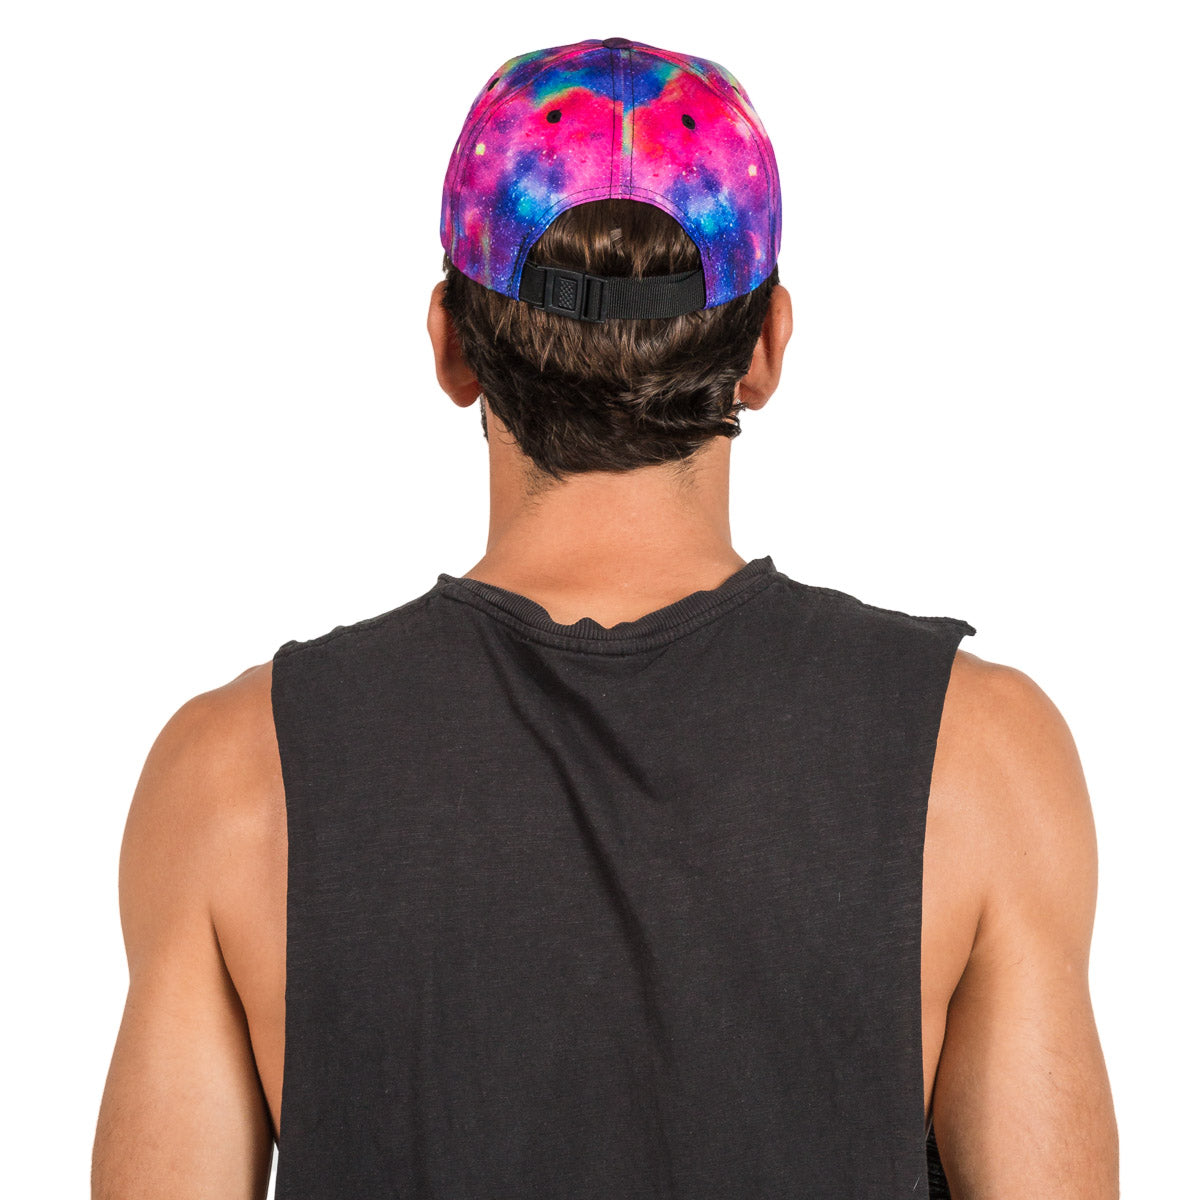 Galaxy Printed Hat for Festivals